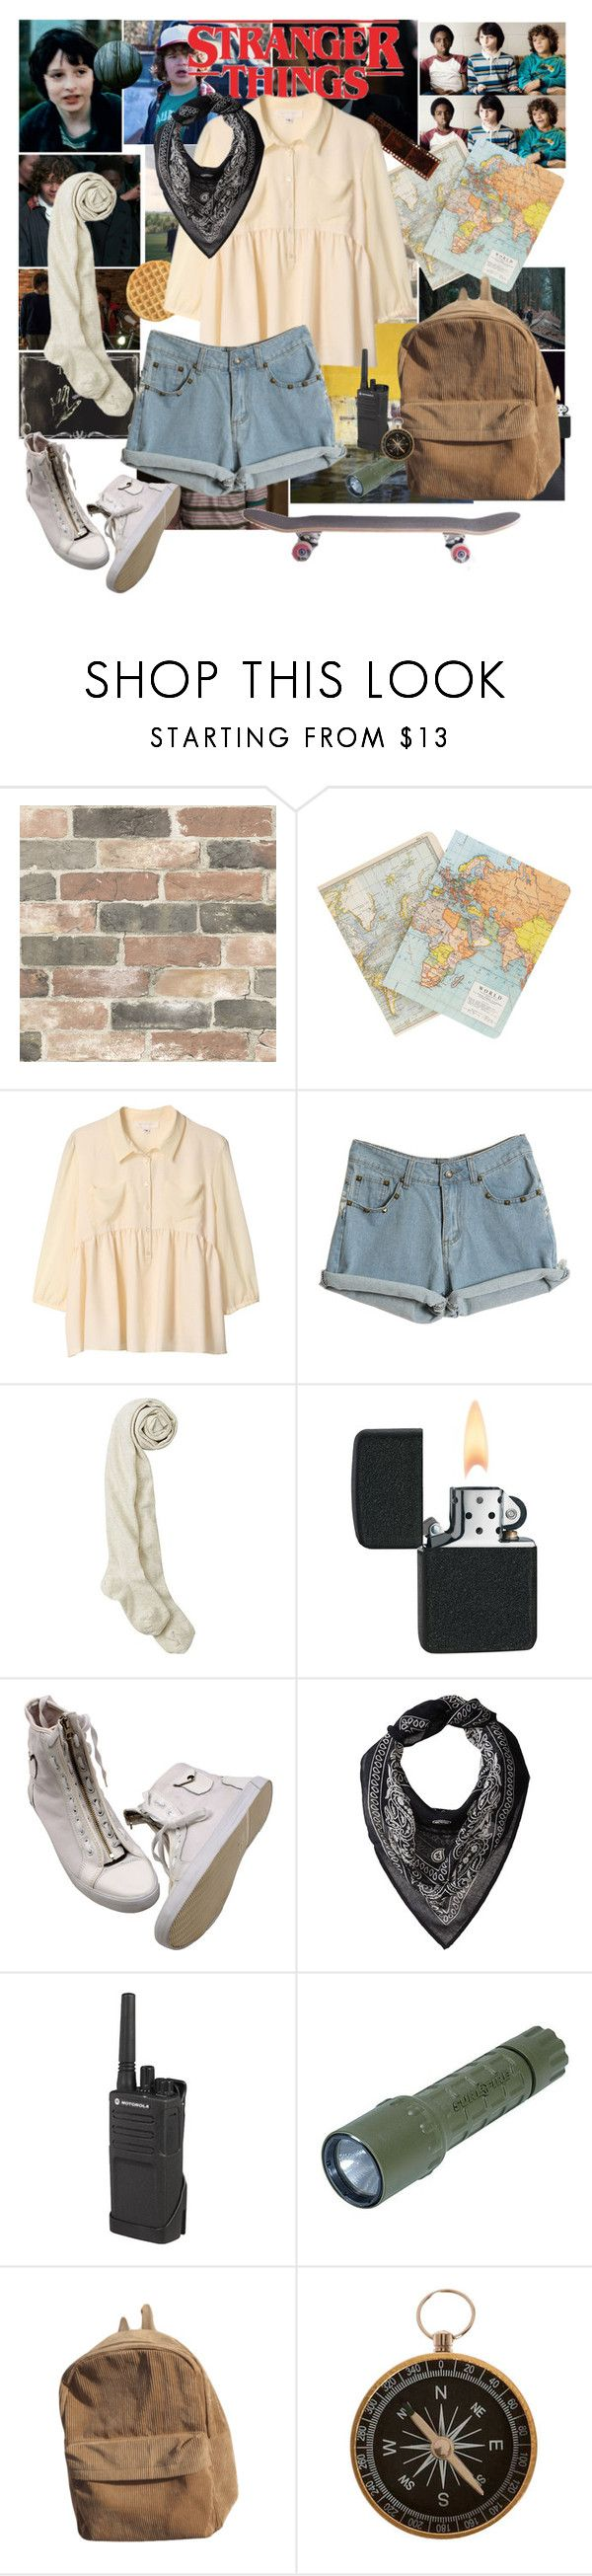 """⓸┇Fandom┇Stranger Things☏"" by fandom-666 ❤ liked on Polyvore featuring Wall Pops!, Paul Frank, Cavallini & Co., Chan Luu, Motorola, Clips, Will, Mike, Dustin and locas"